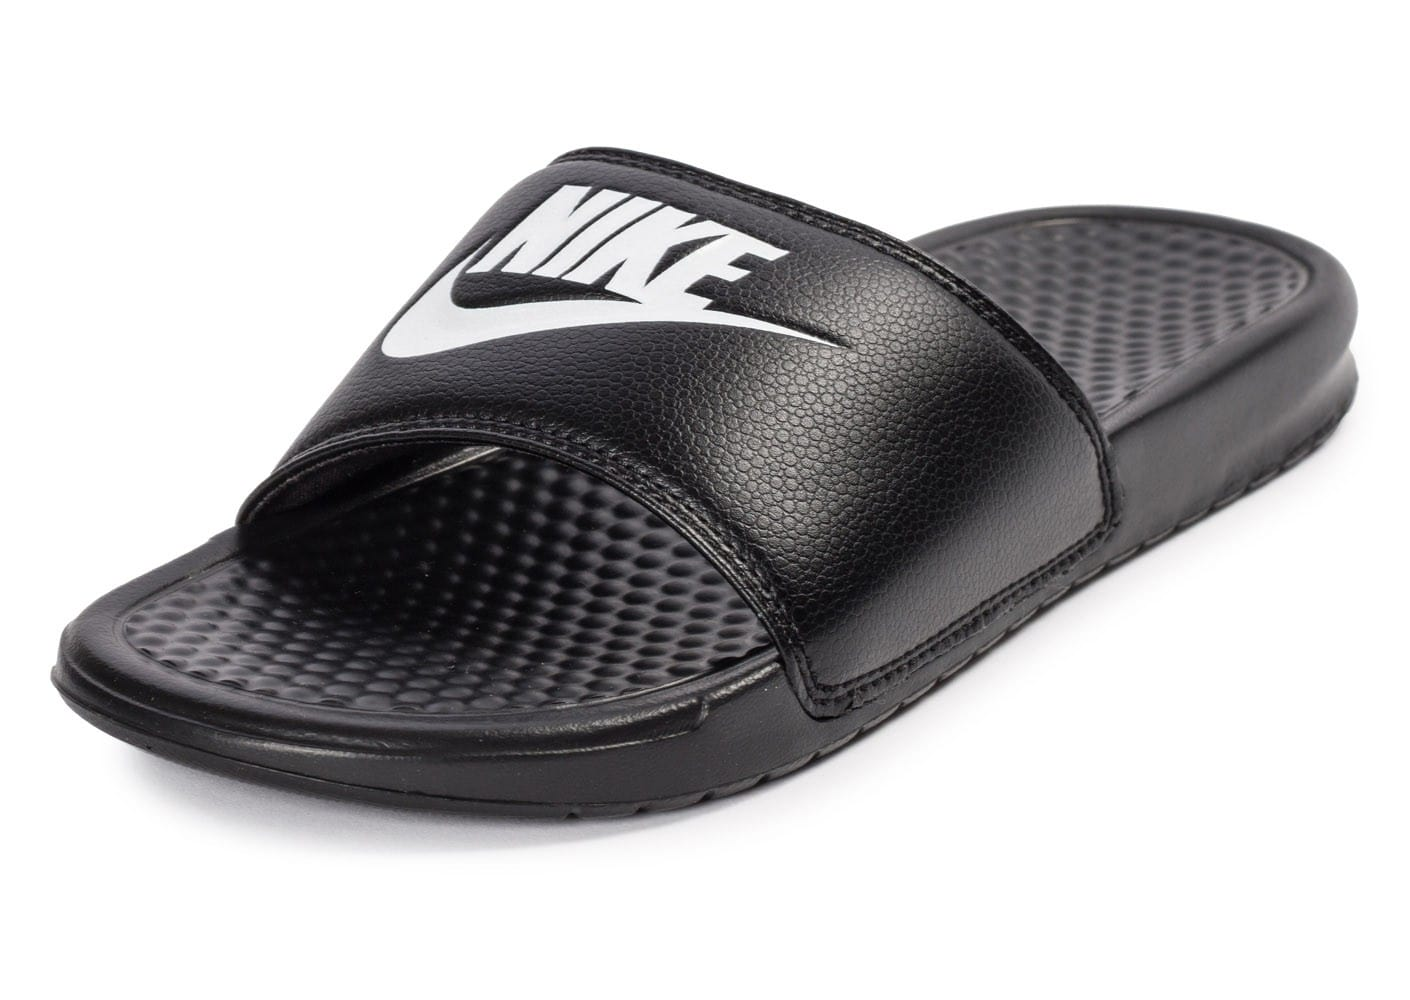 Nike Claquettes BENASSI JUST DO IT Nike soldes 0JhxZ